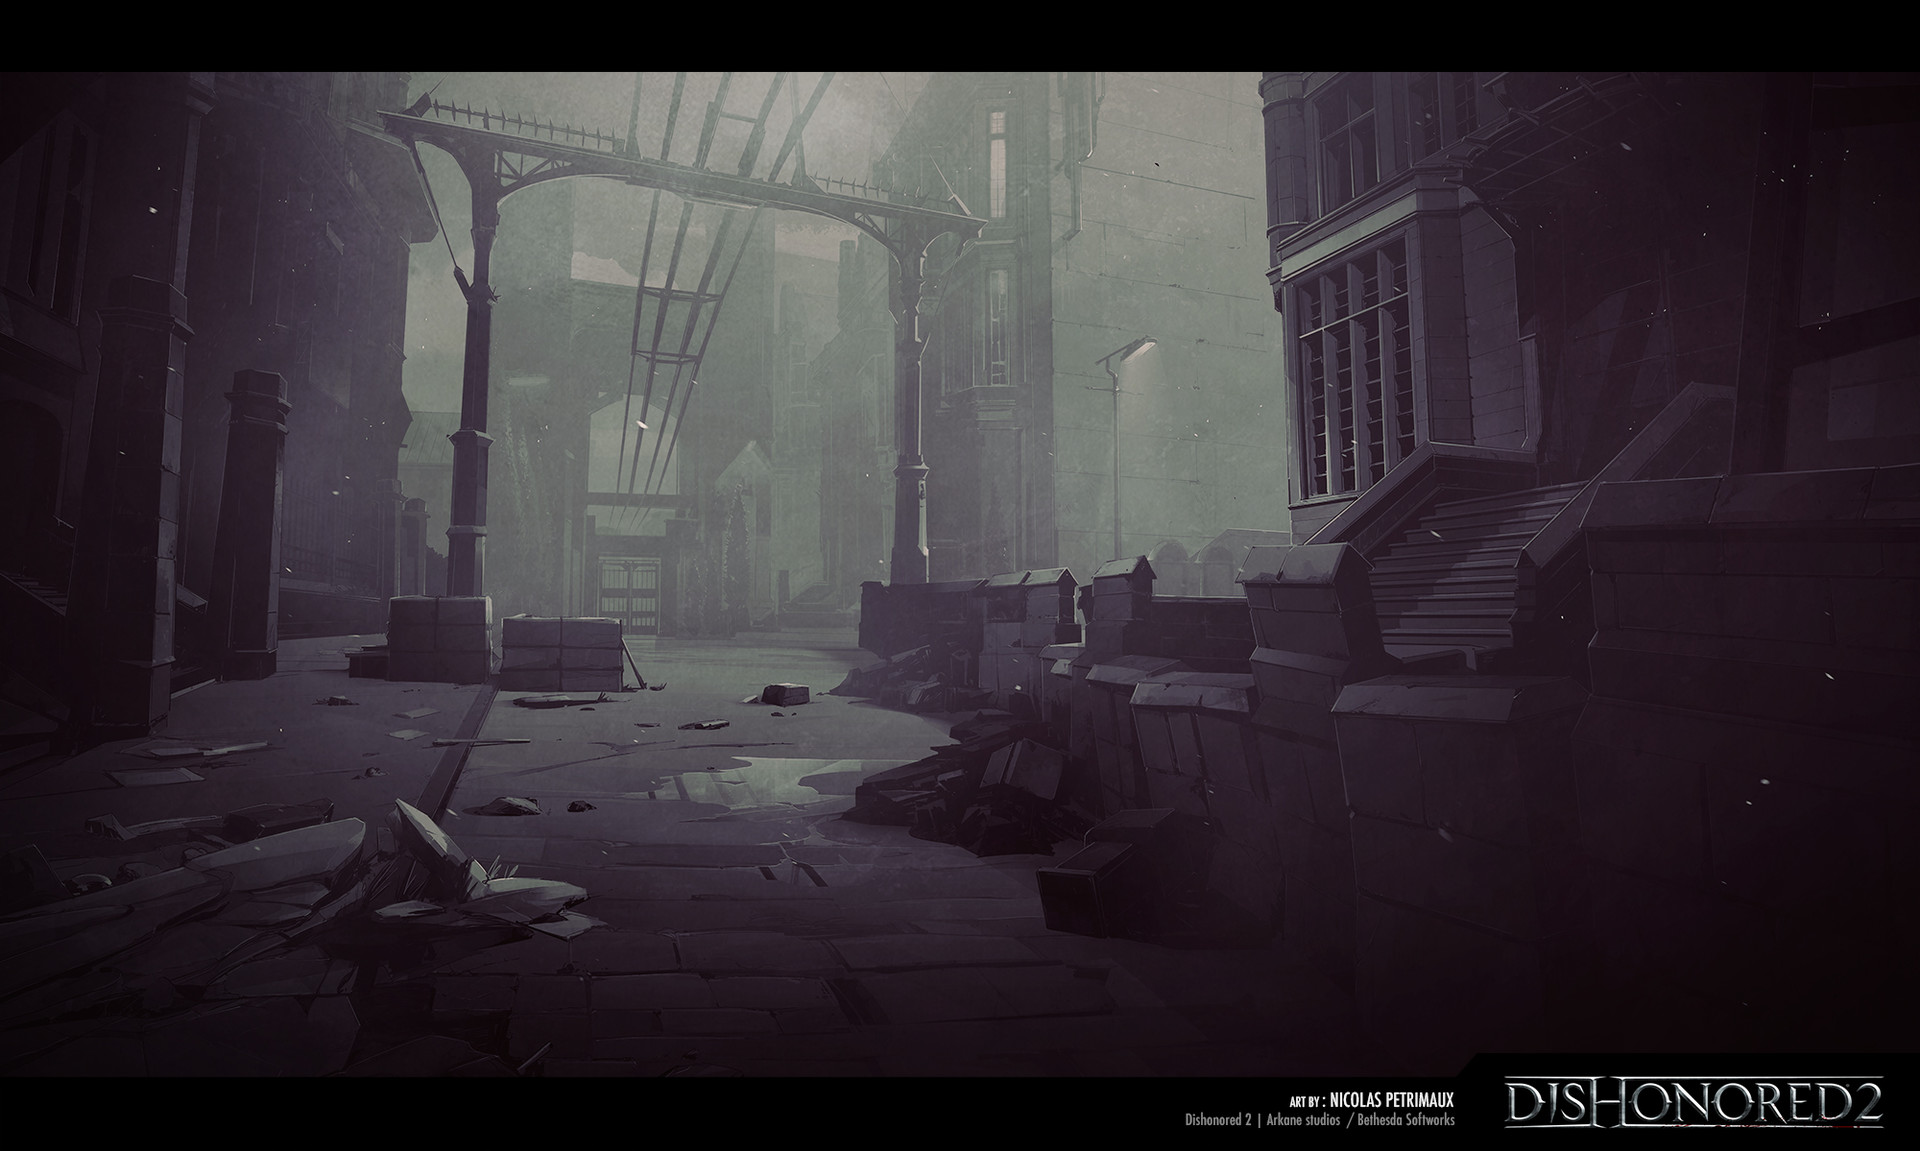 Nicolas petrimaux templatecredit dishonored2 dunwallescape